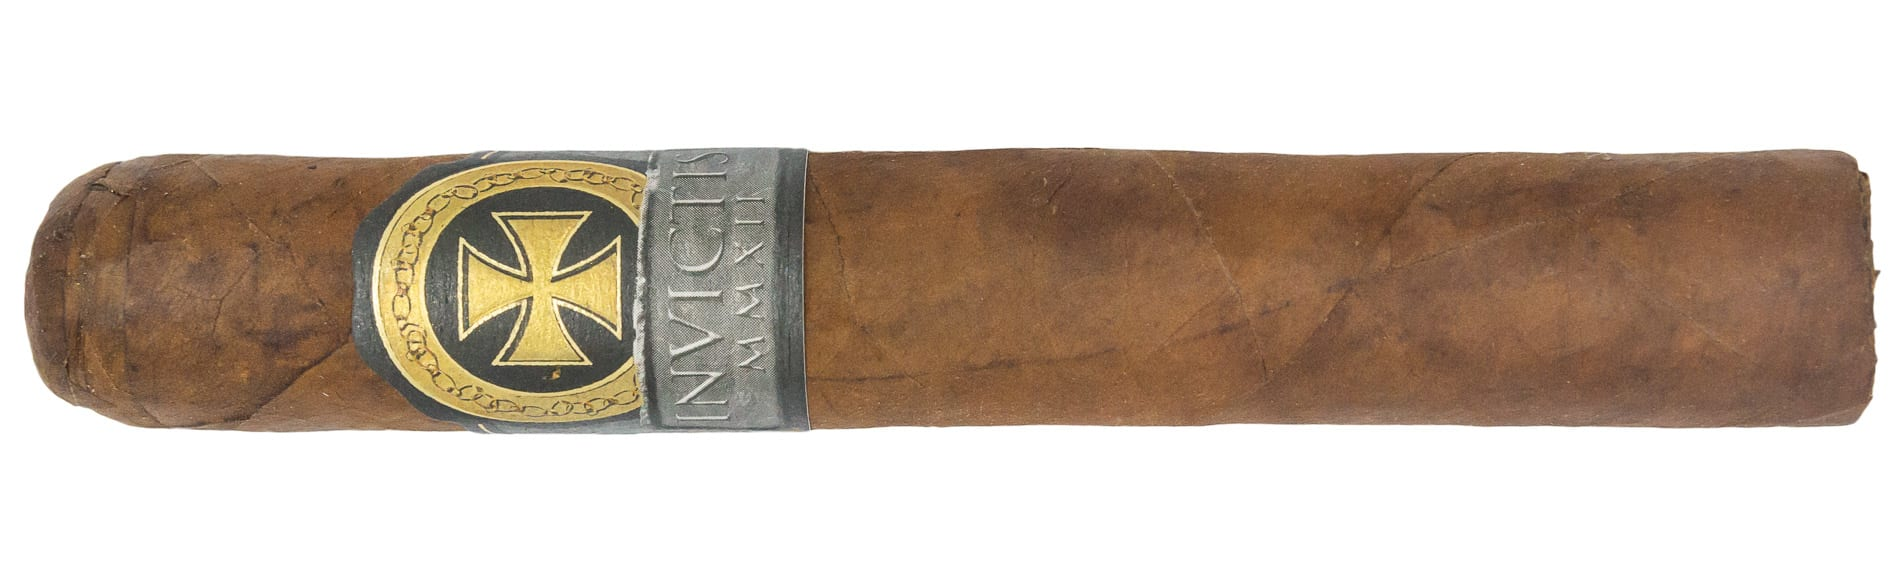 Blind Cigar Review: TRE J | Invictis Centurio Featured Image